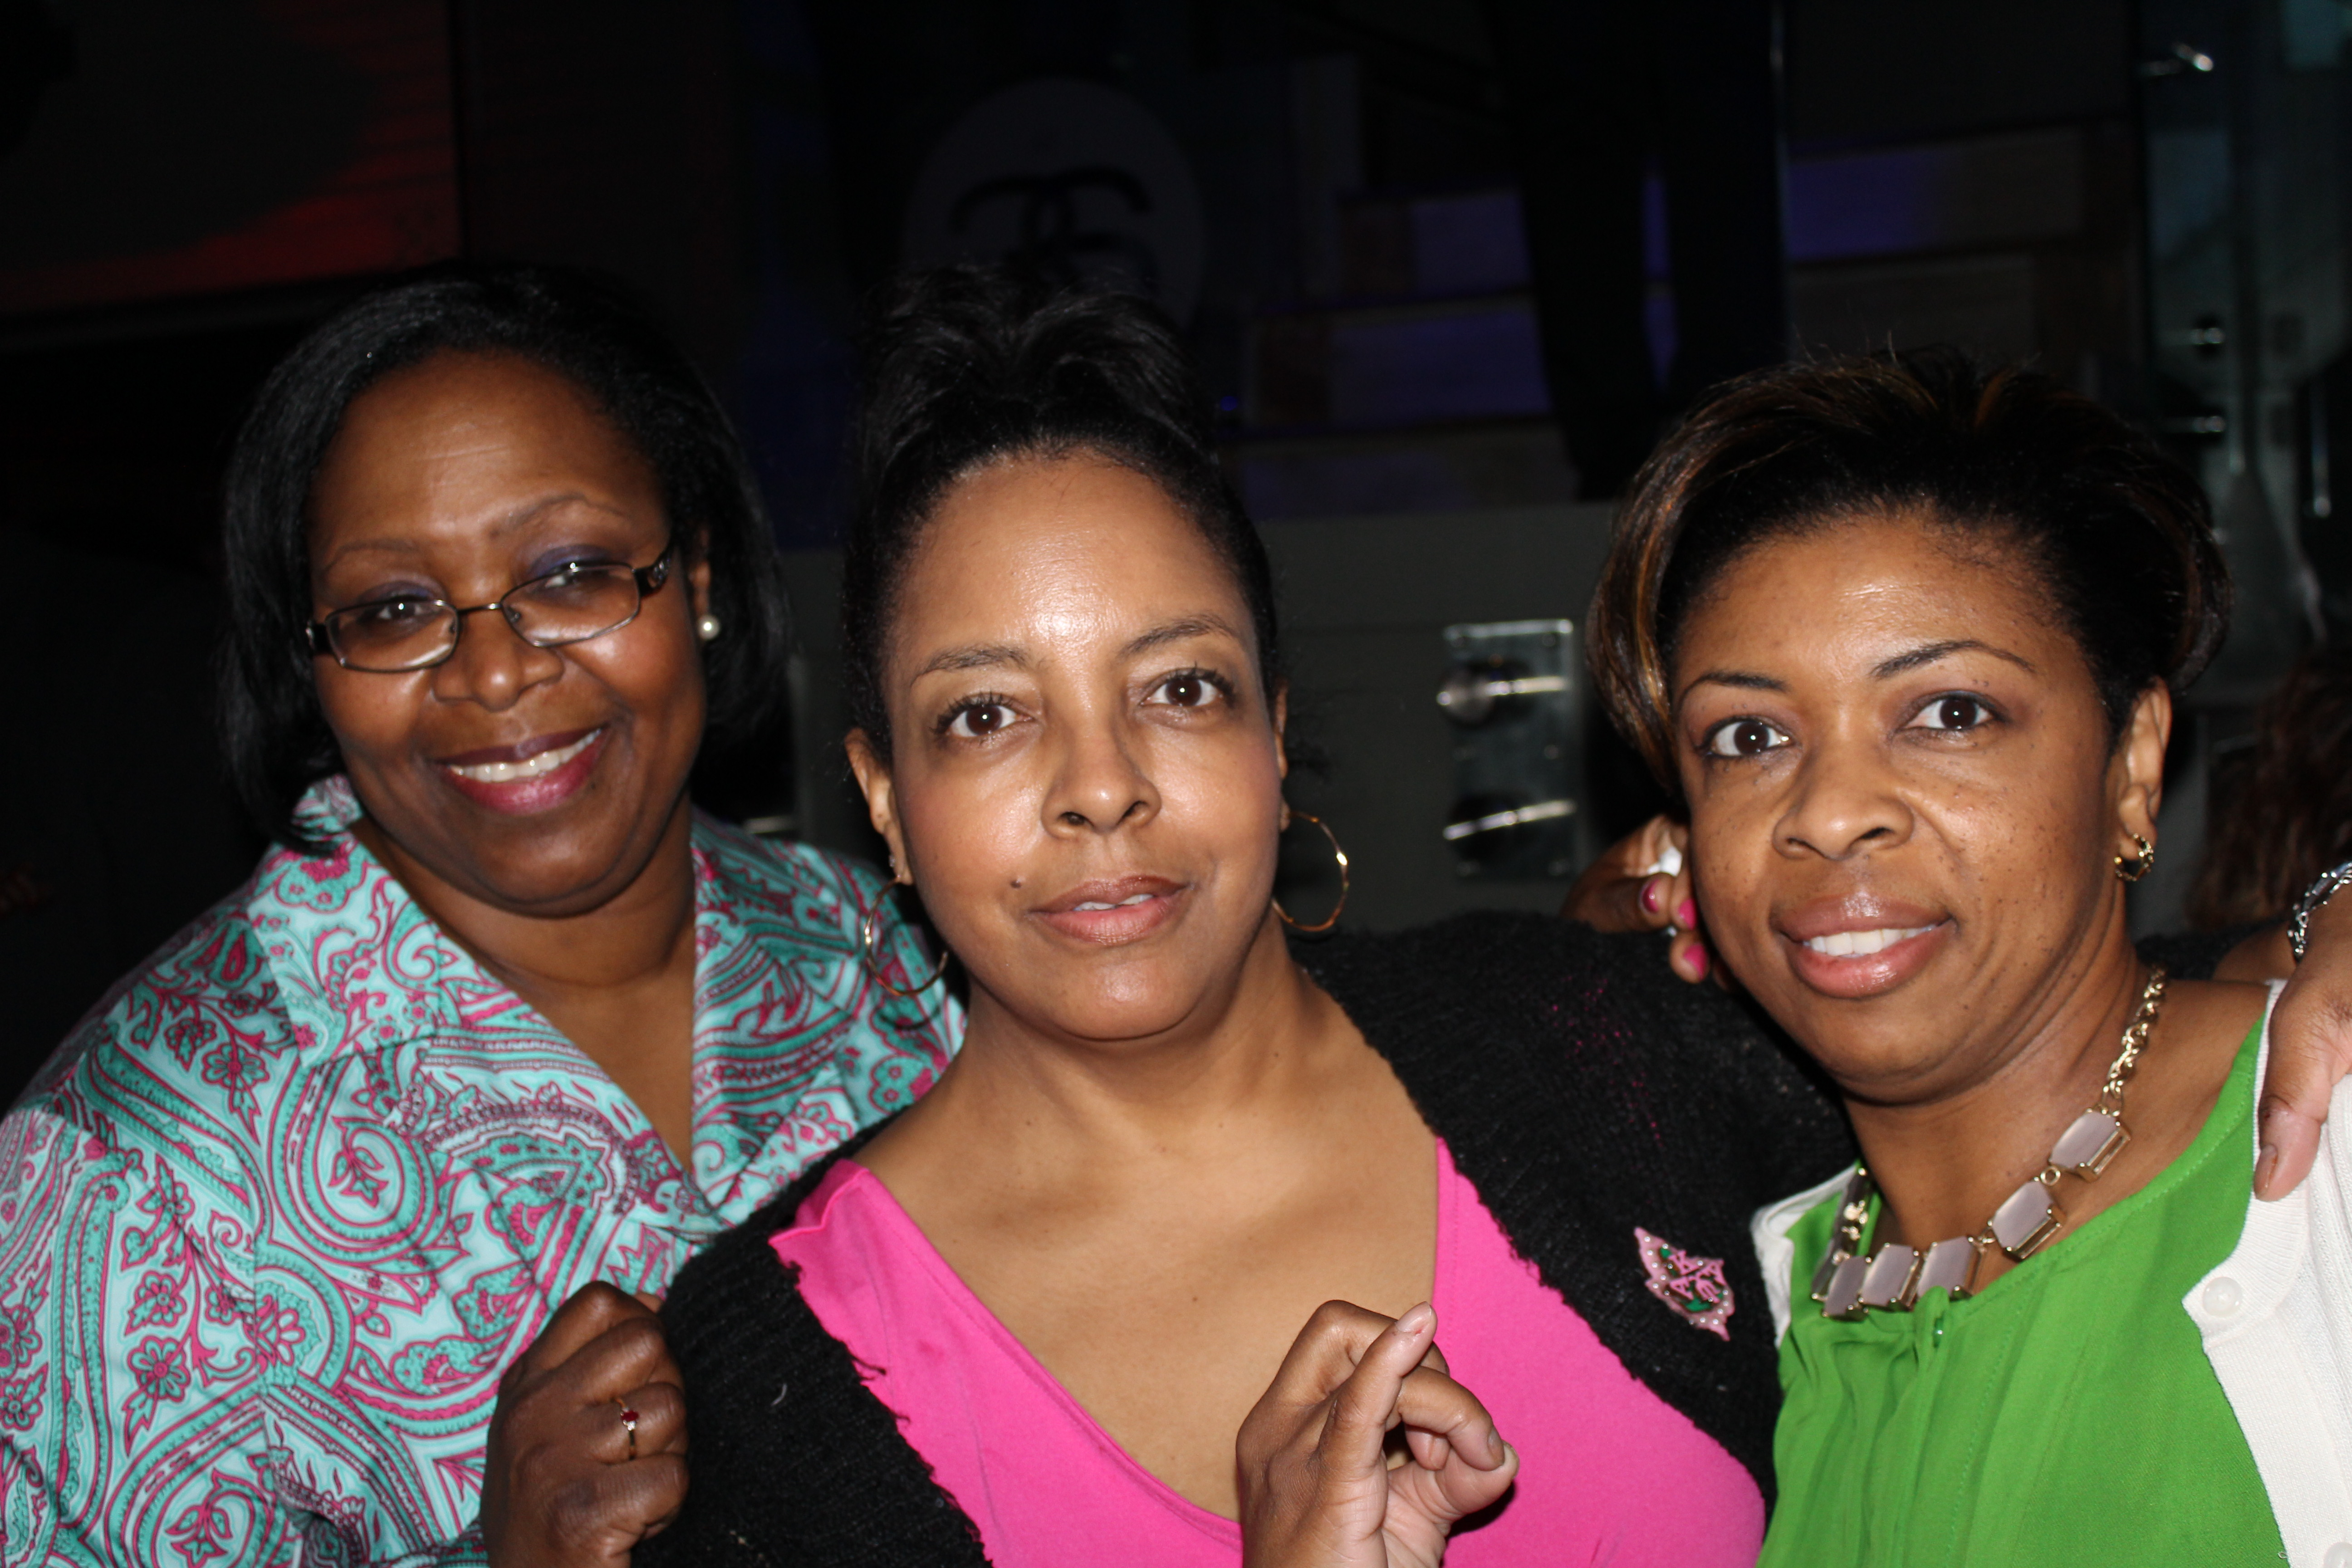 AKA Zeta Founders Day Party Jan 2015 269